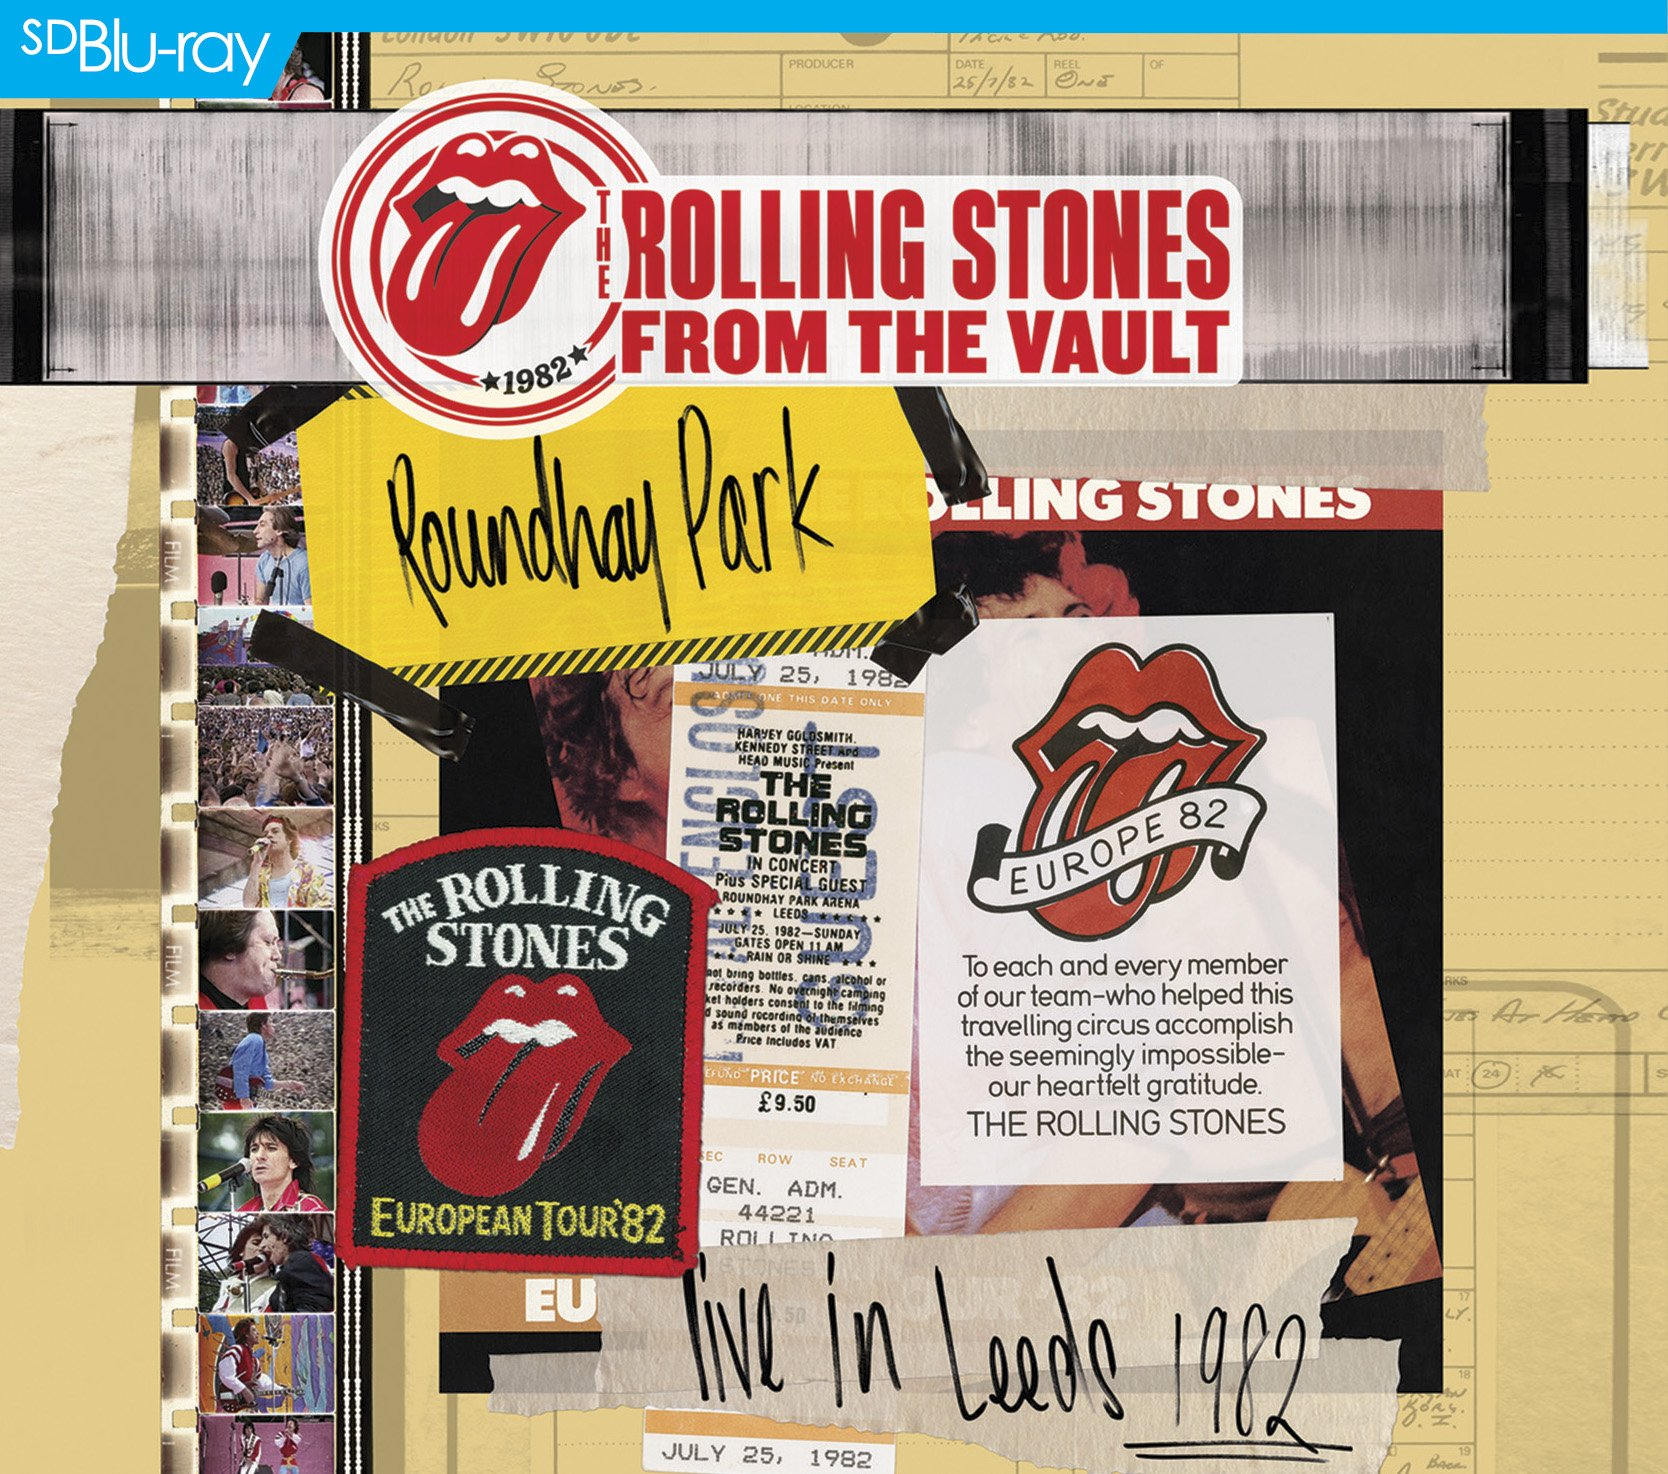 Blu-ray : The Rolling Stones - The Rolling Stones: From the Vault - Live in Leeds 1982 (With CD, 3 Disc)